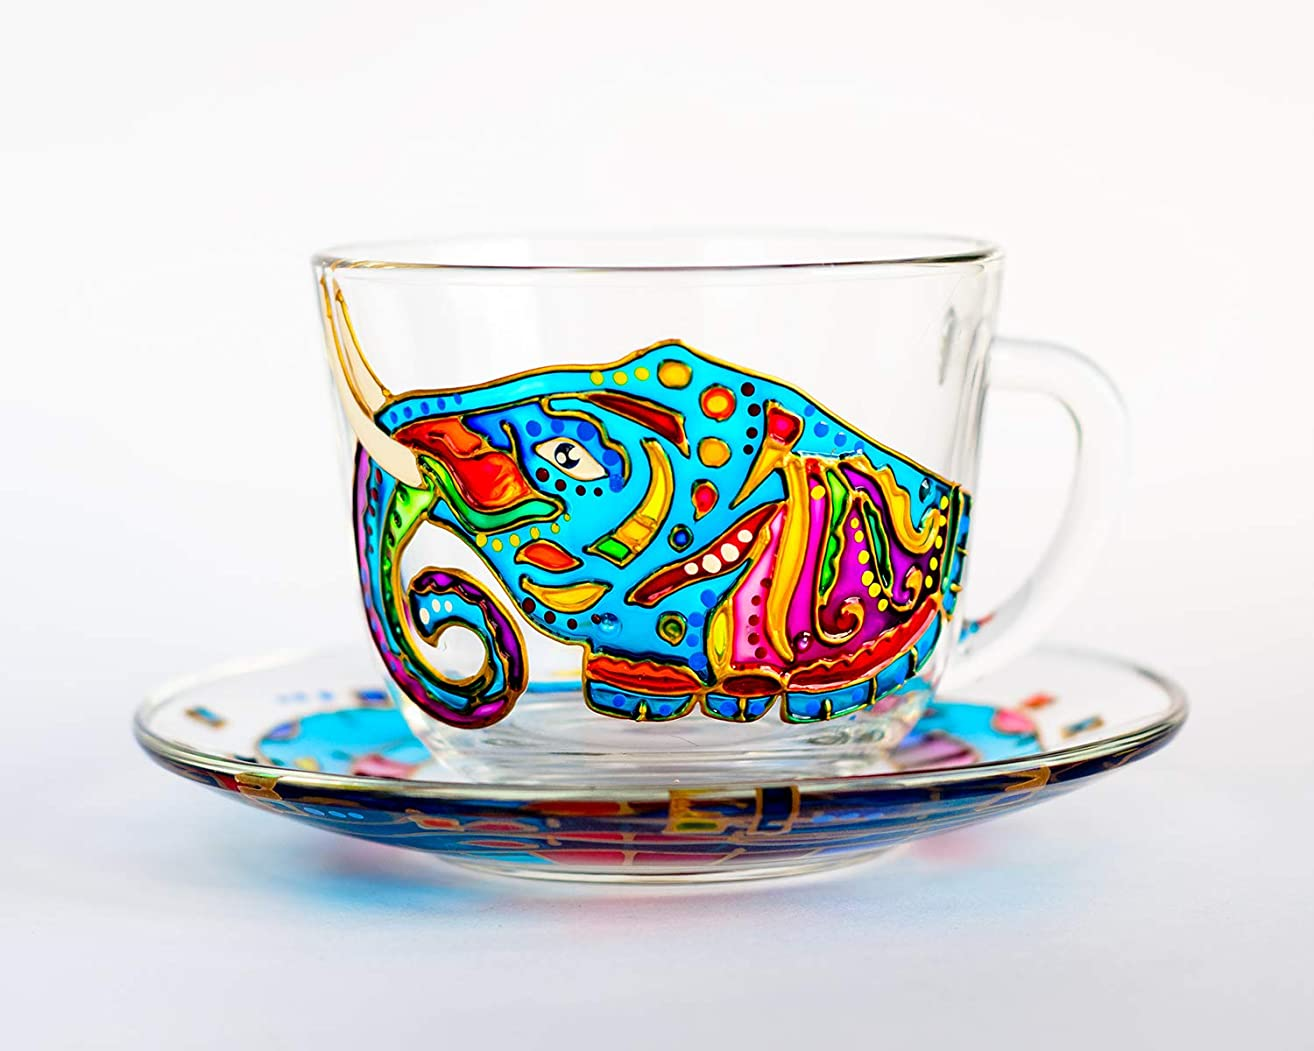 Personalized Tea Cup and Saucer Set Gifts Colorful Elephant - Personalized Tea Sets for Women - Teacup and Saucer Set